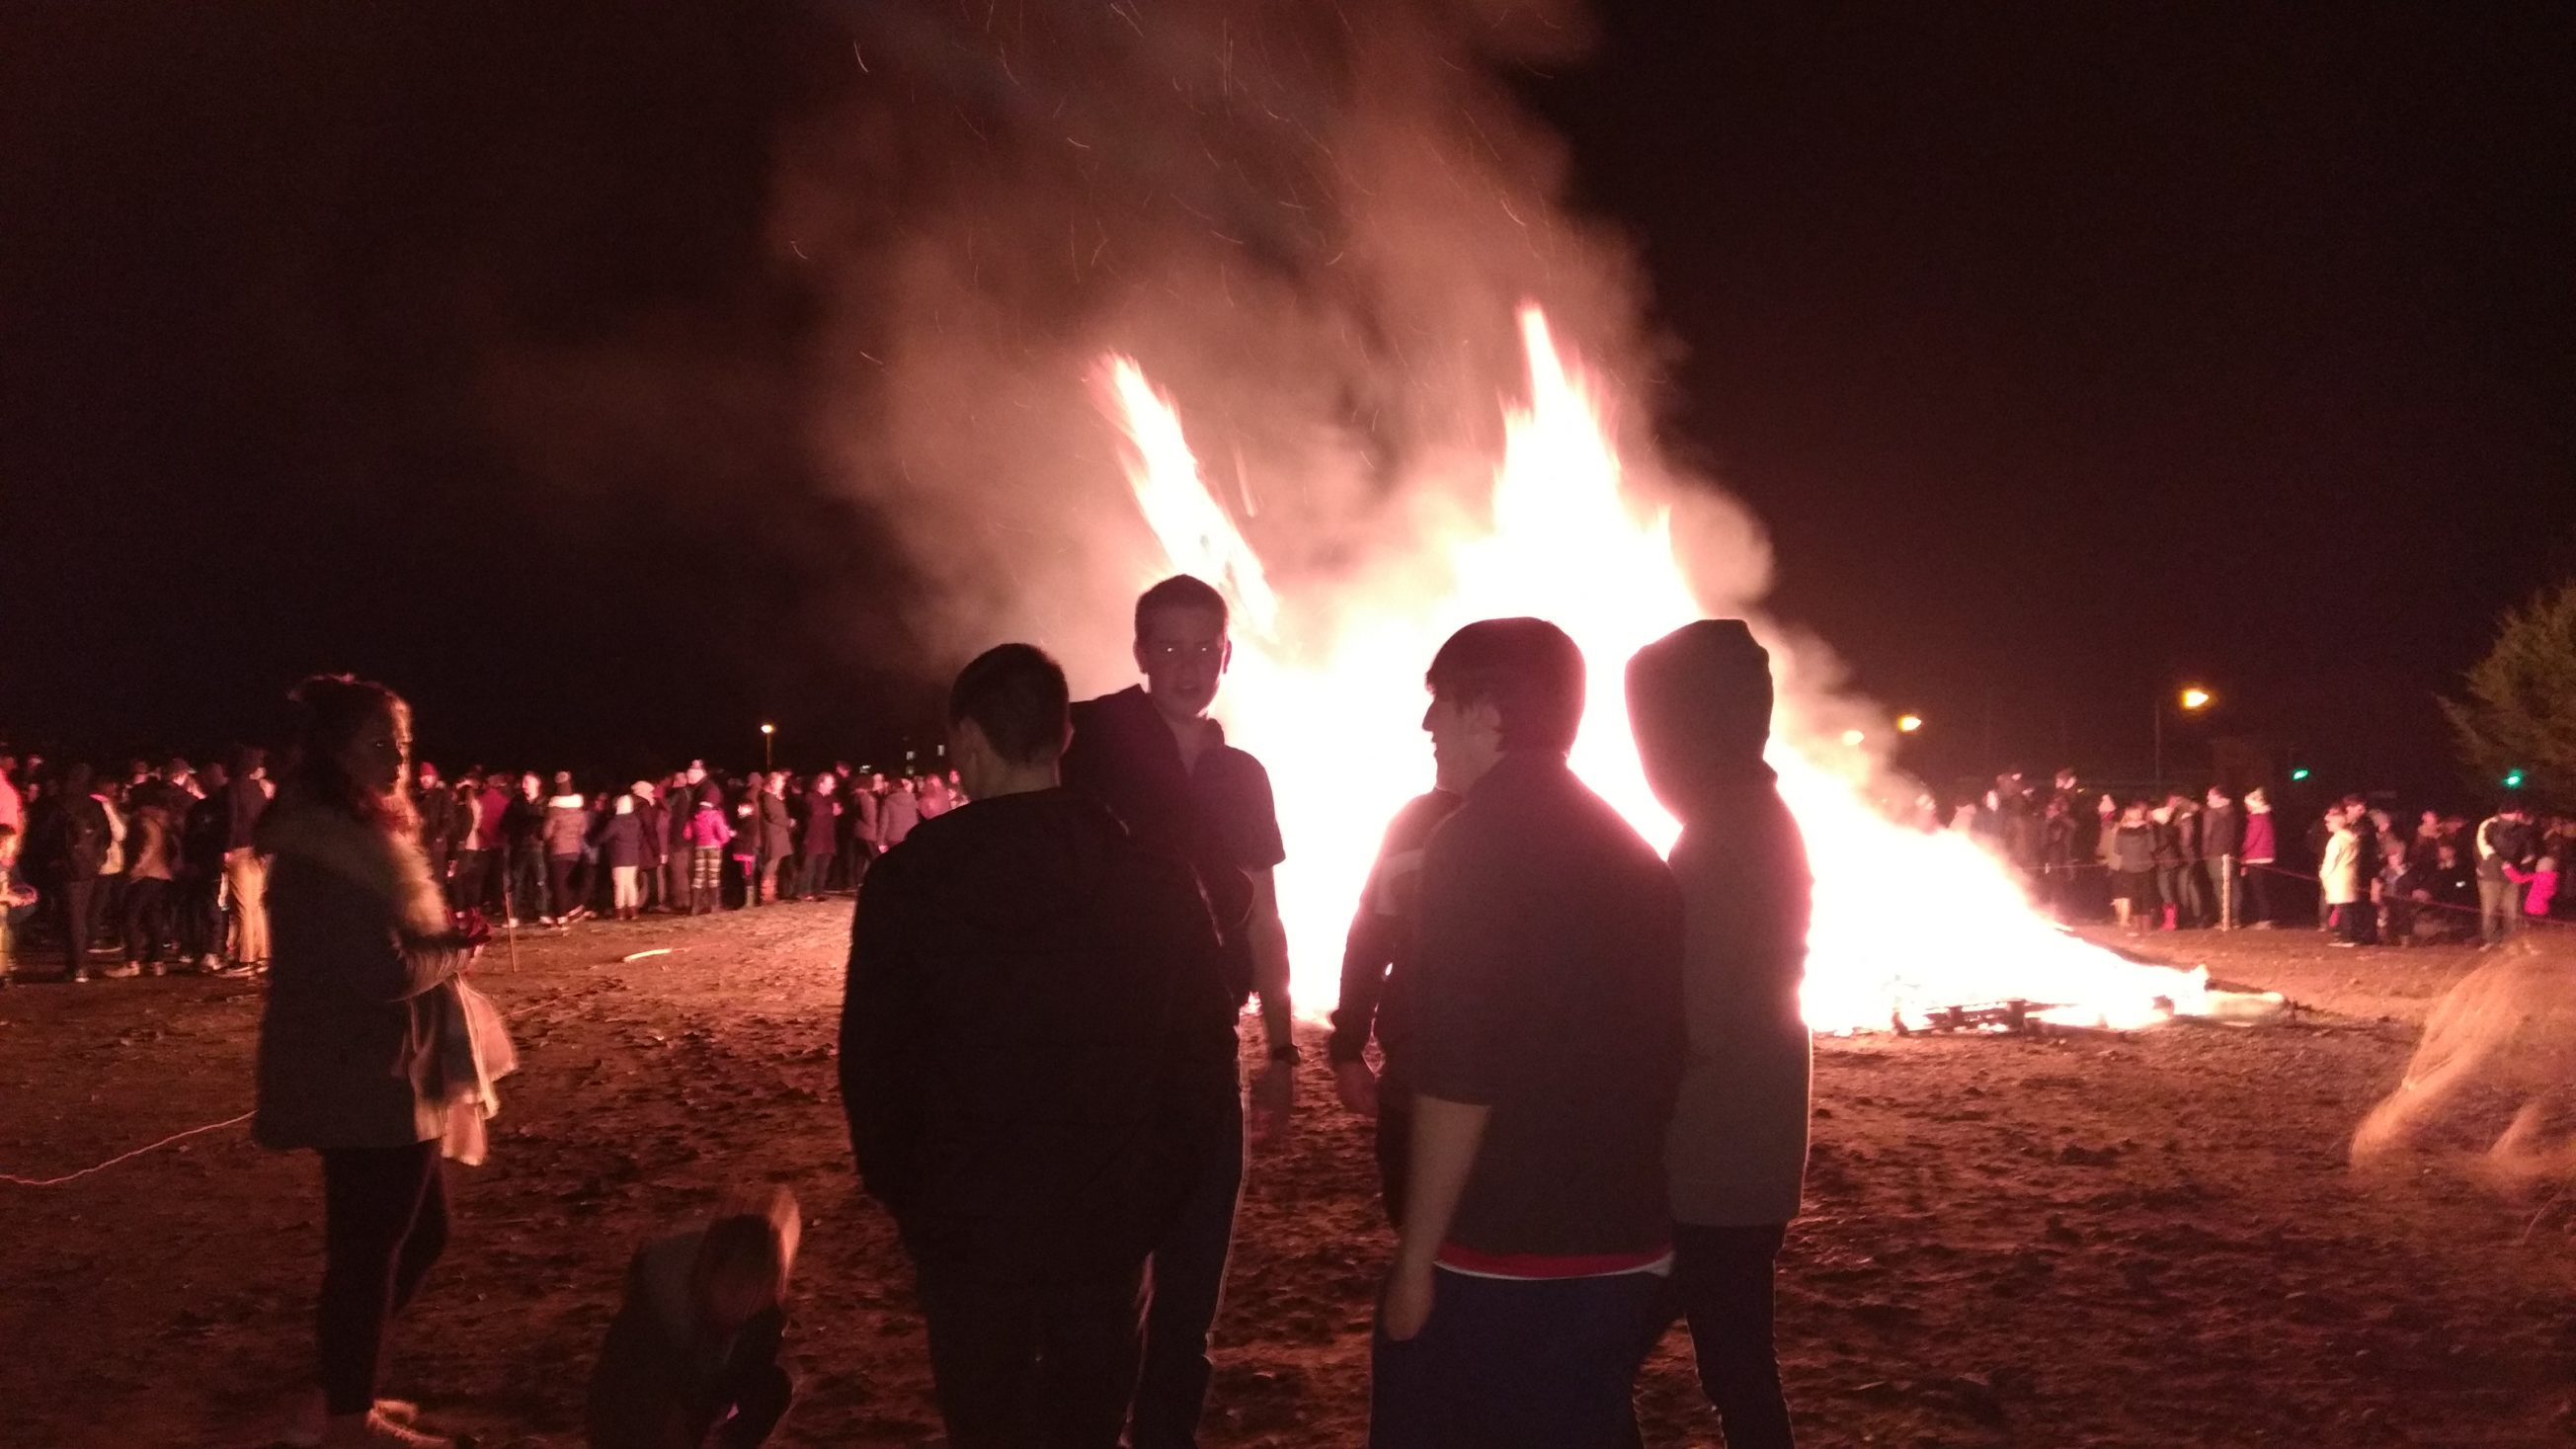 bonfire night - english course in scotland